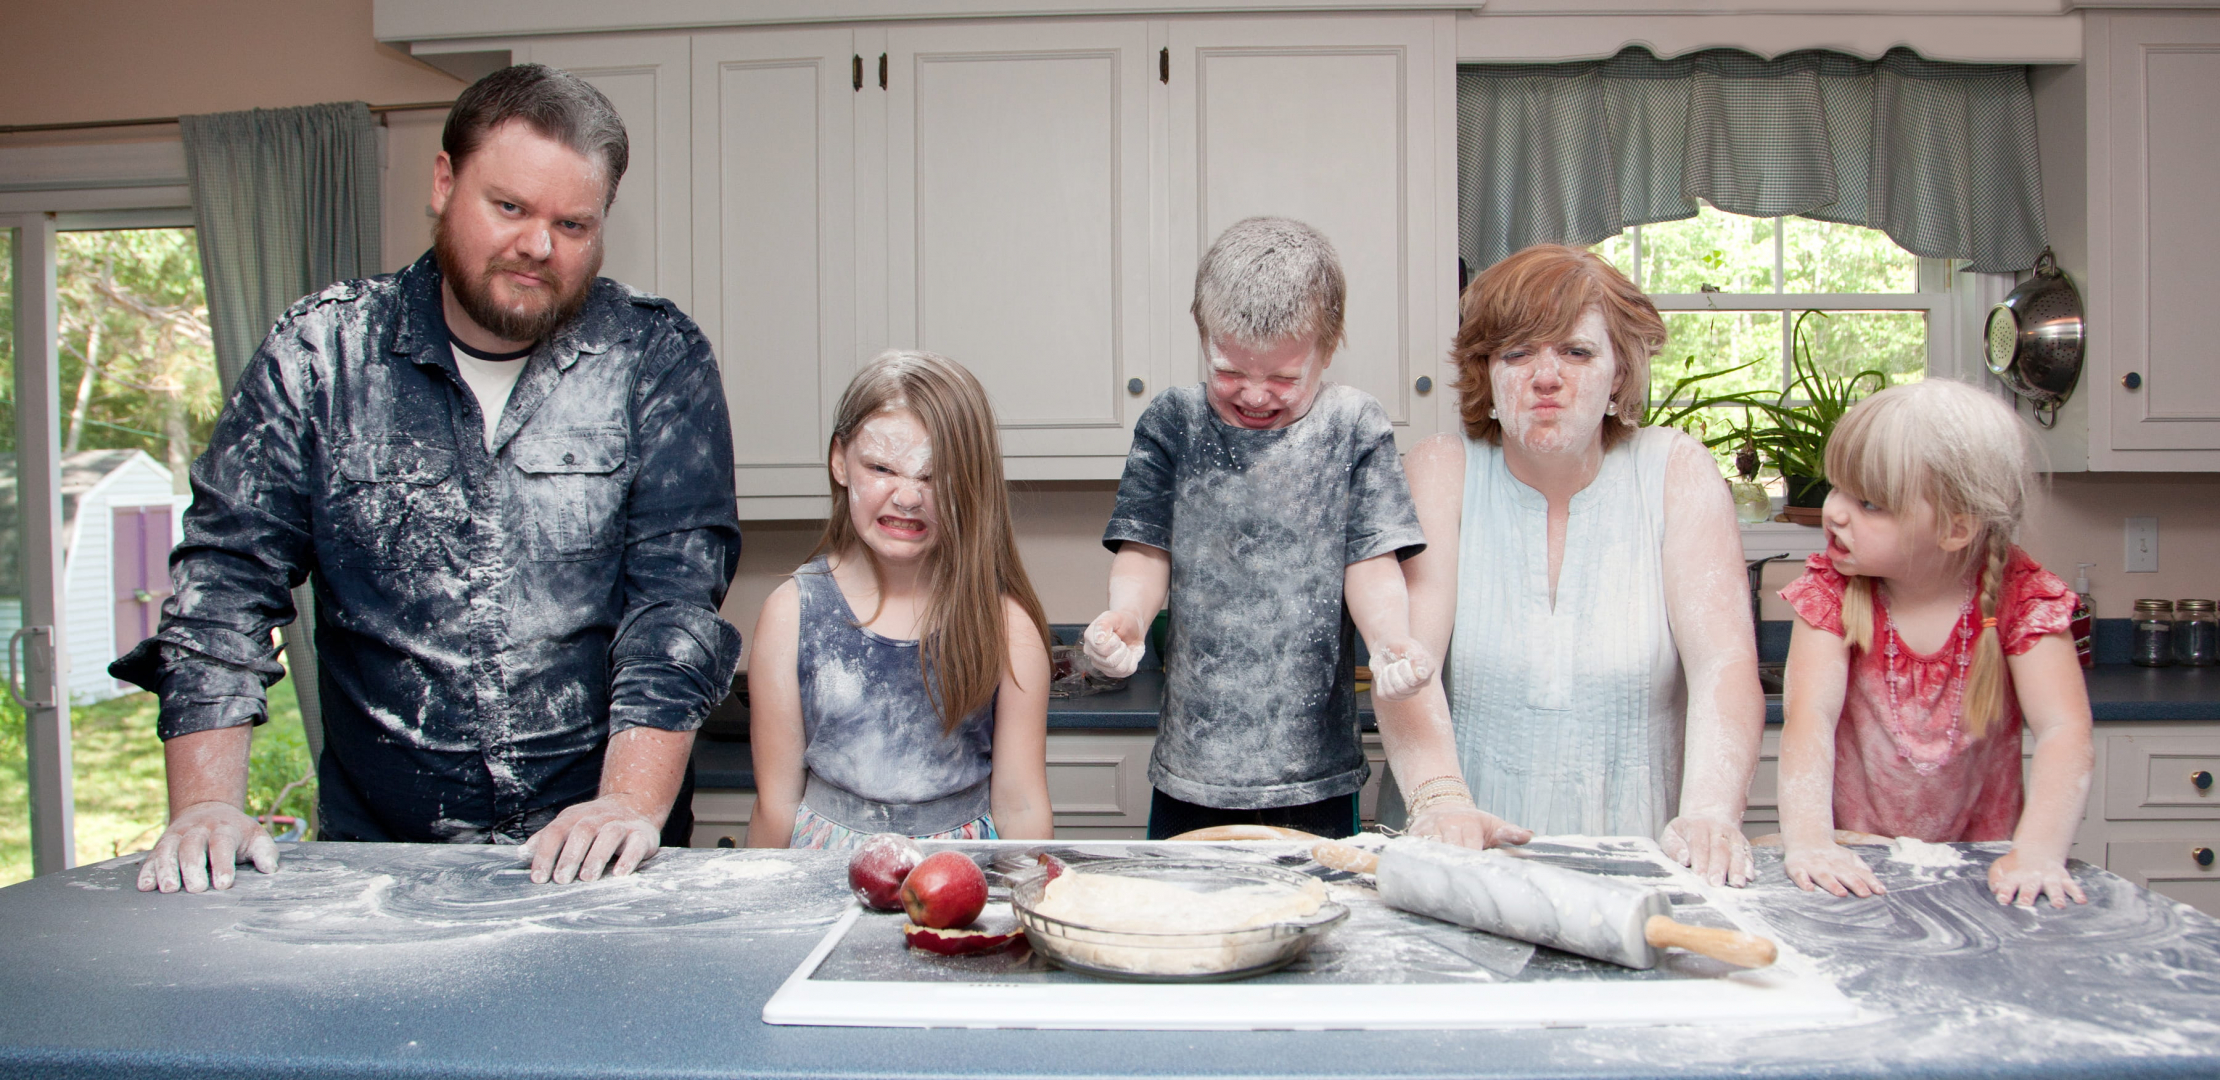 family baking food in a messy kitchen